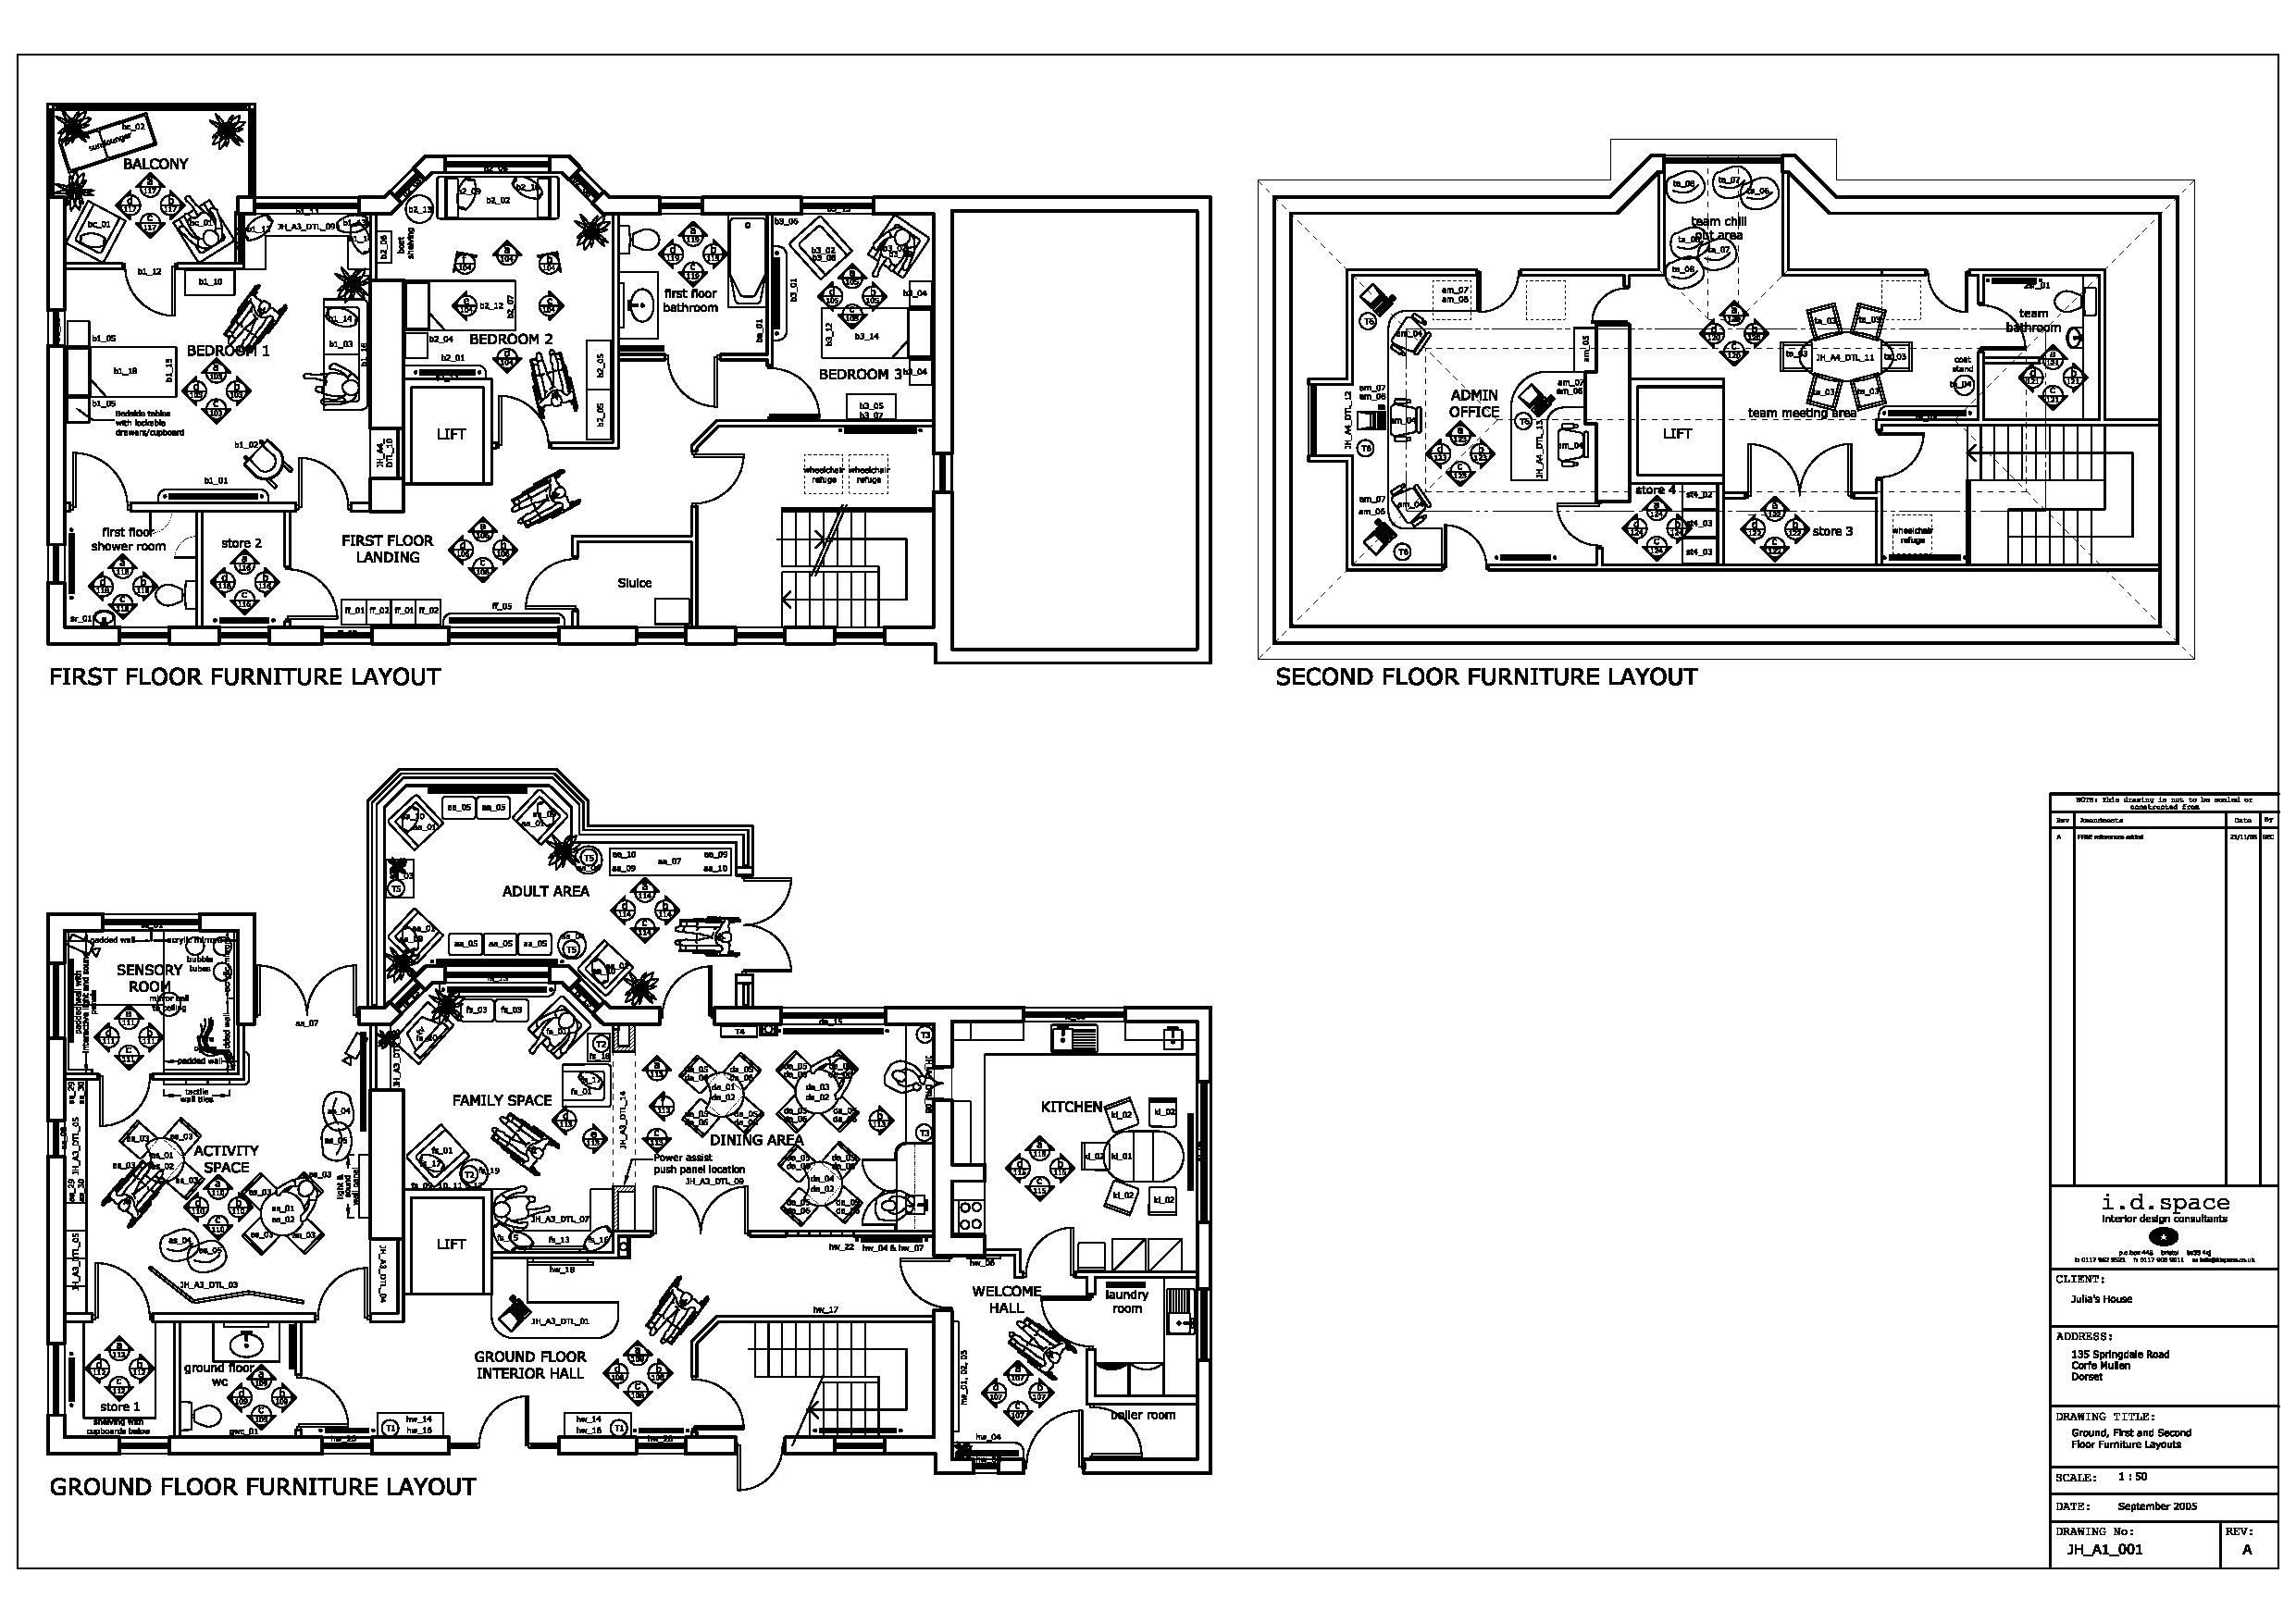 File Furniture Layout Plan For Hospice